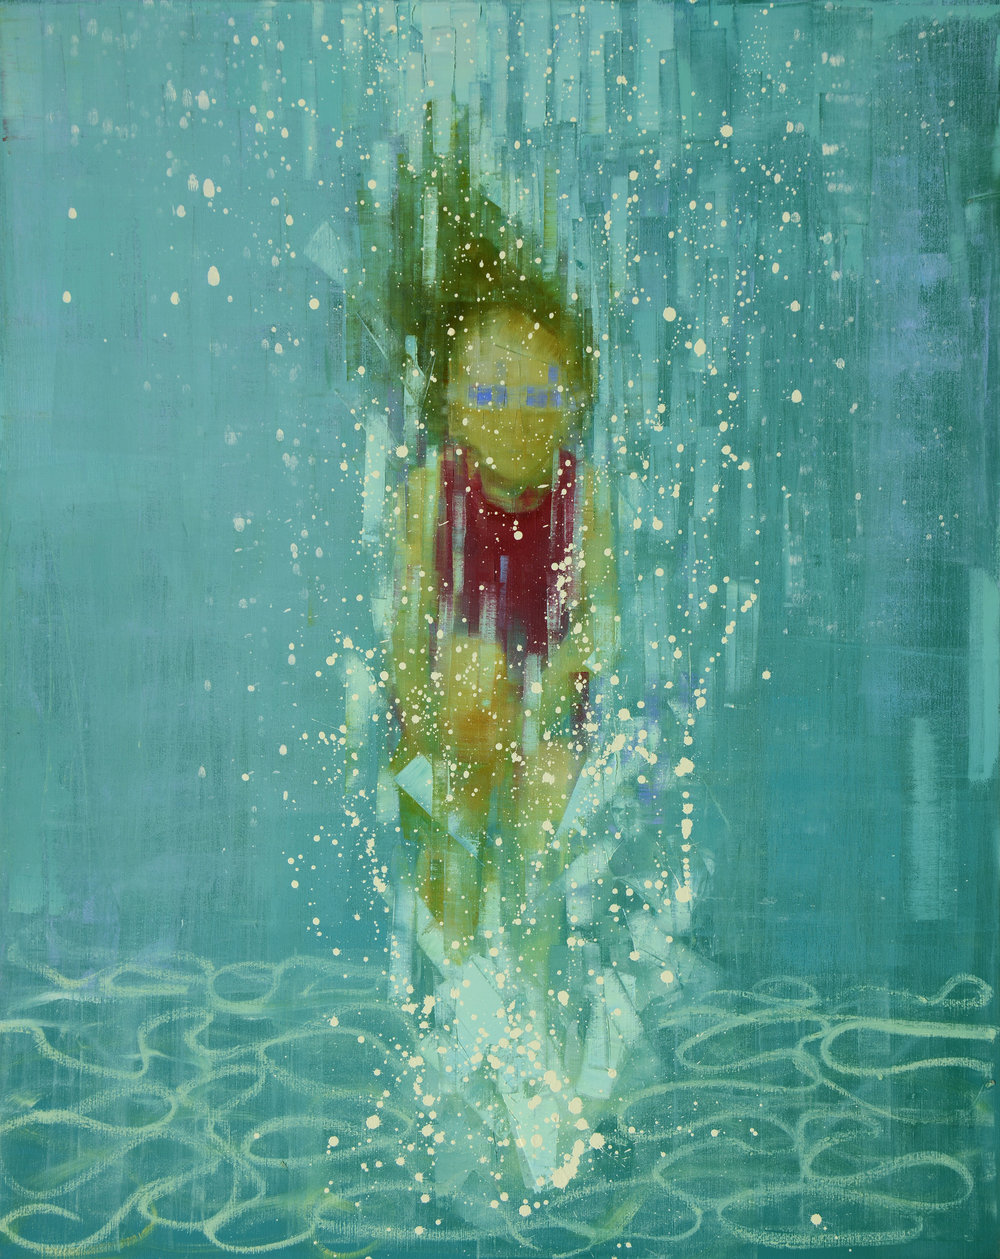 DEEP END (BLUE GOGGLES)   -PRIVATE COLLECTION-  60 x 48 inches  oil and wax on linen